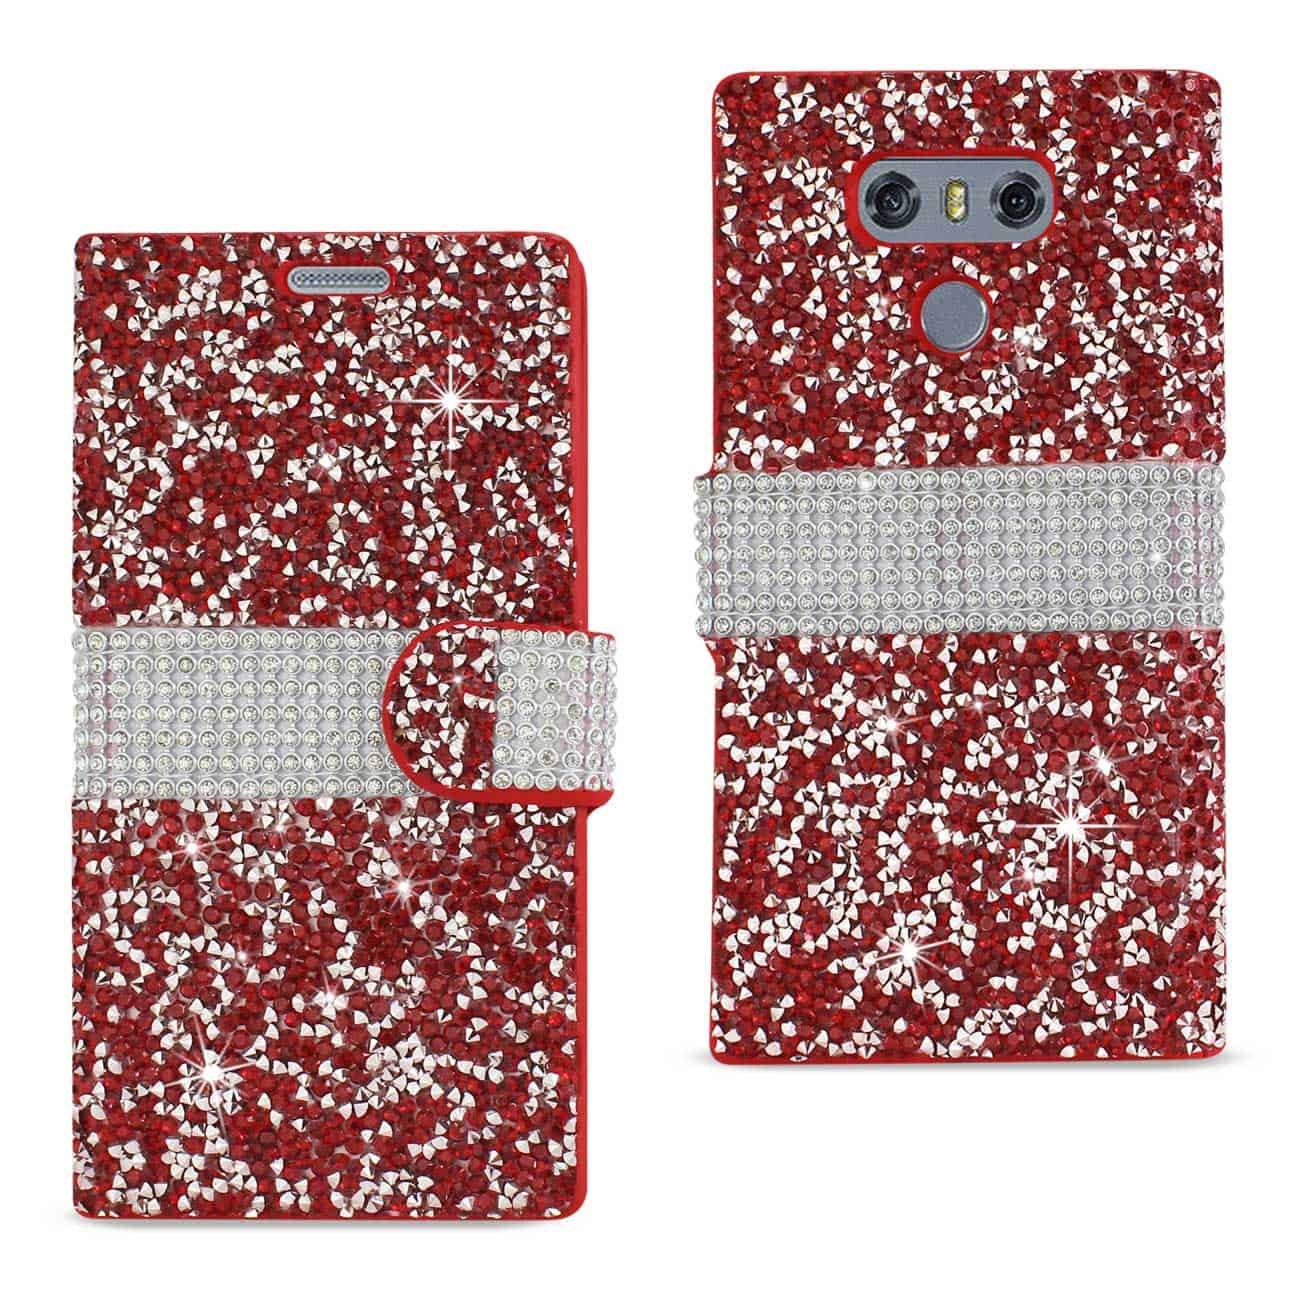 LG G6 DIAMOND RHINESTONE WALLET CASE IN RED